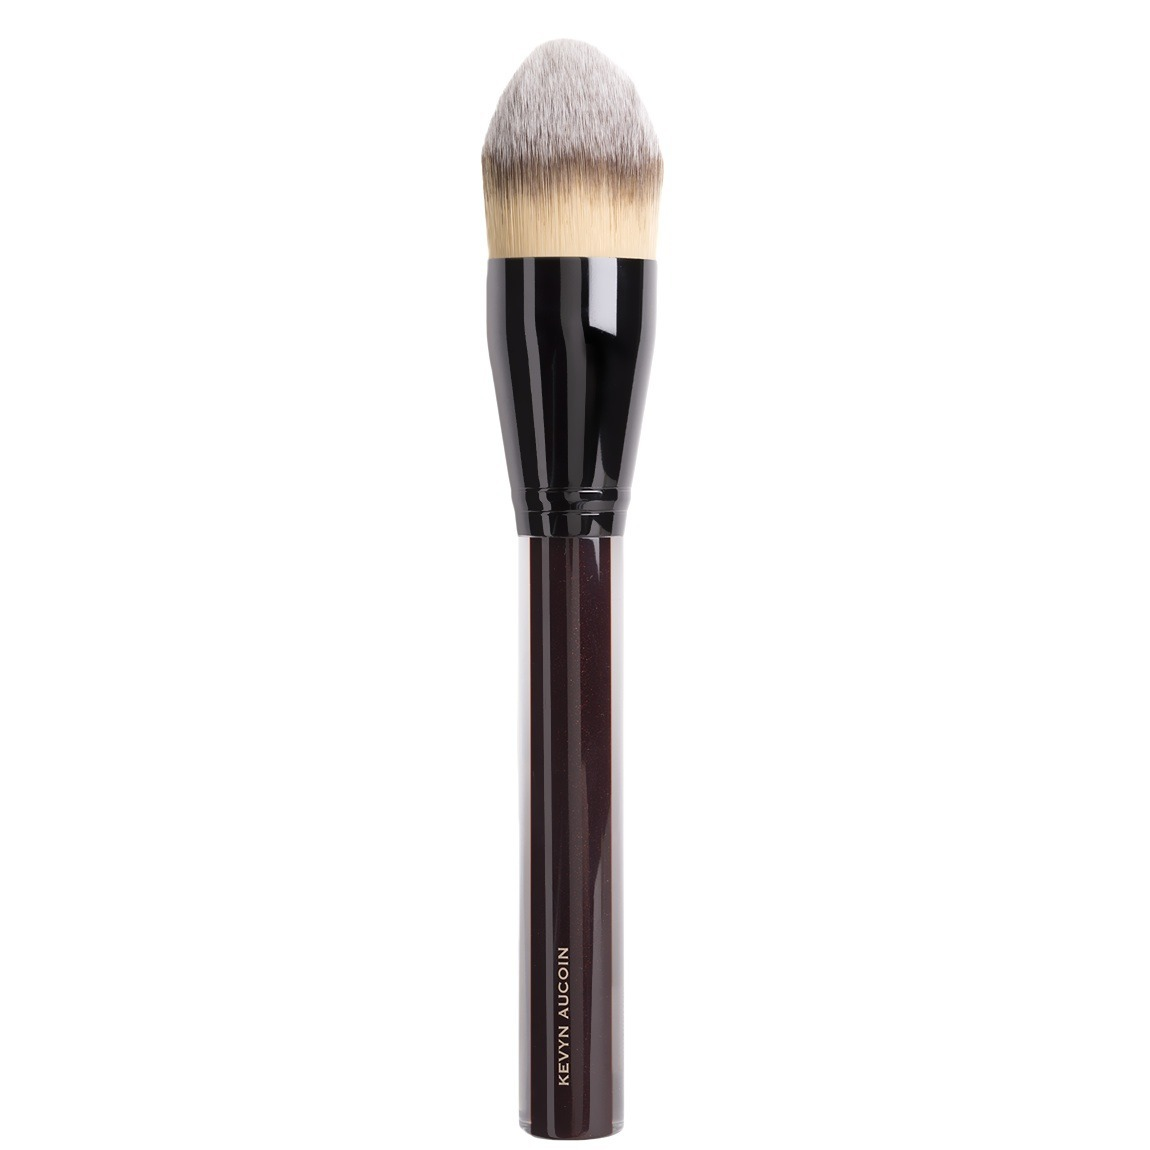 Kevyn Aucoin The Foundation Brush product swatch.